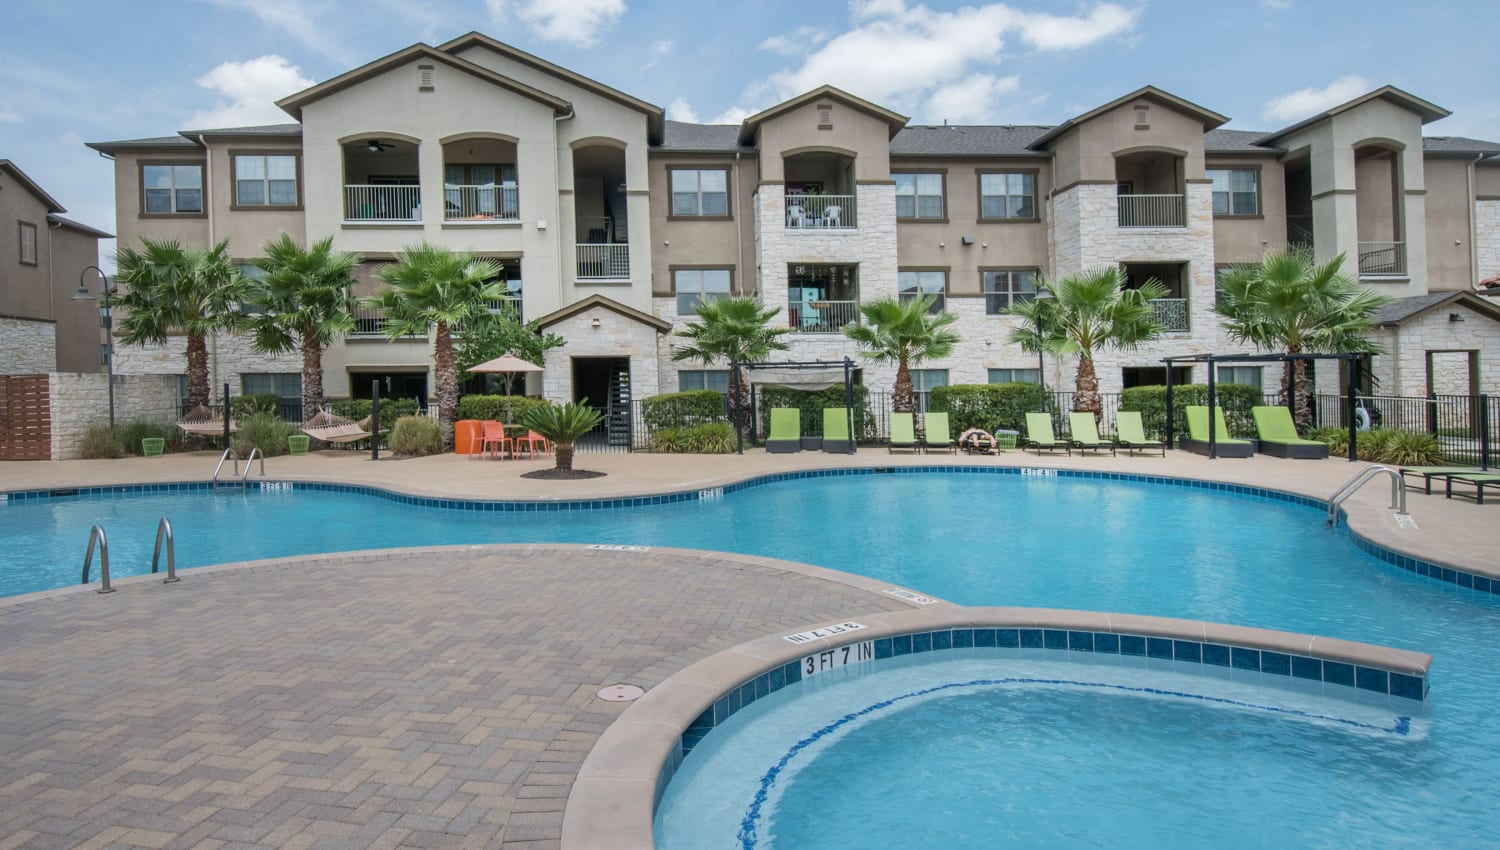 Resort-style swimming pool surrounded by palm trees at Carrington Oaks in Buda, Texas